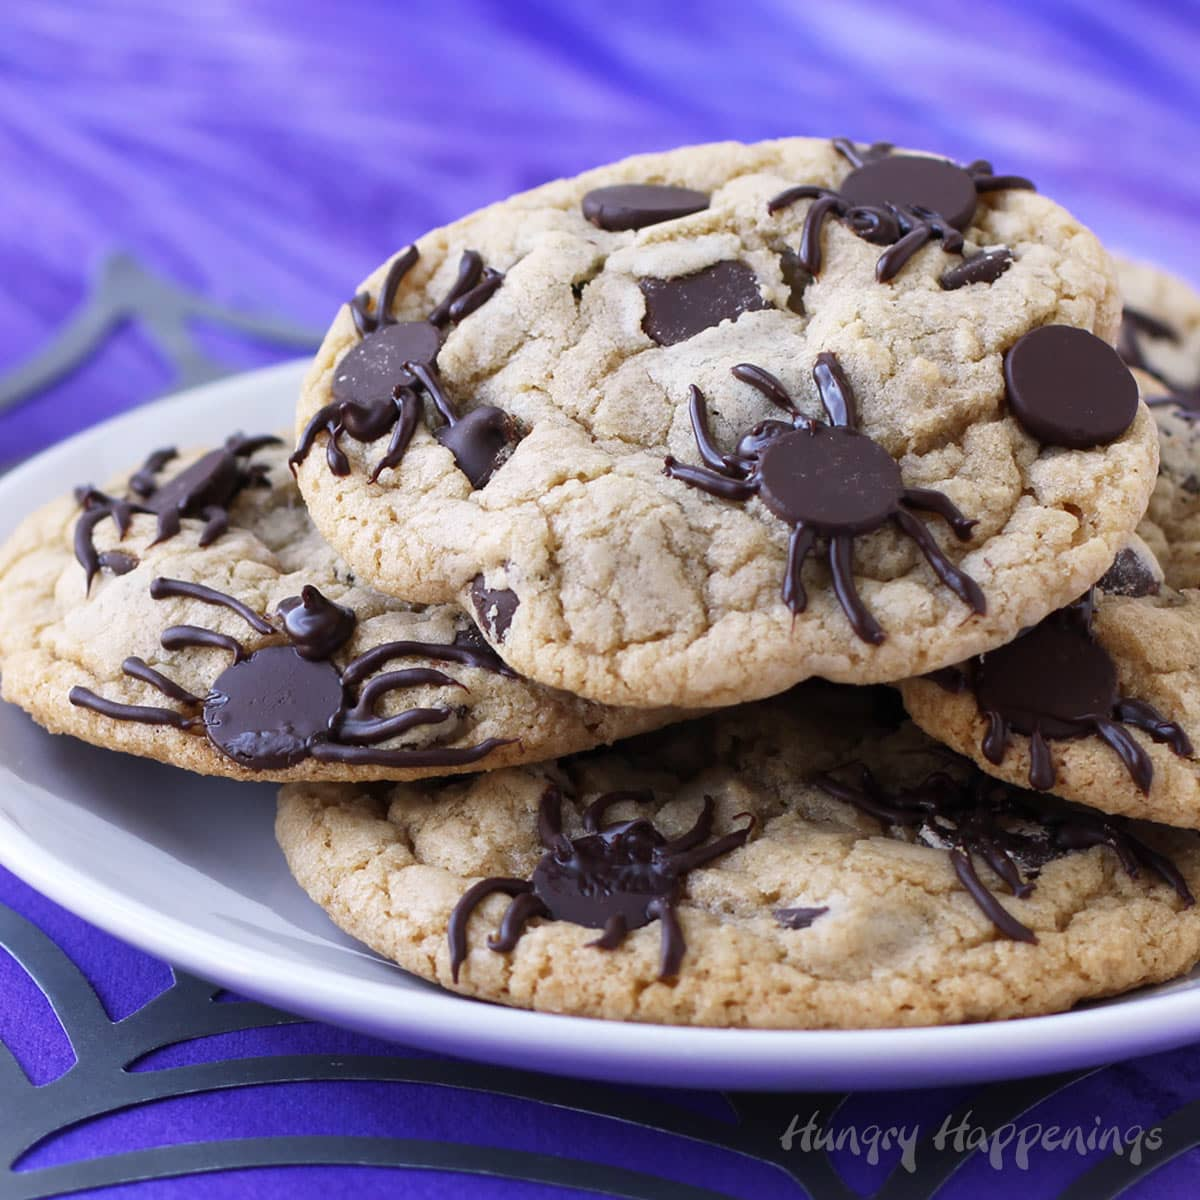 Spider chocolate chip cookies infested with chocolate spiders.